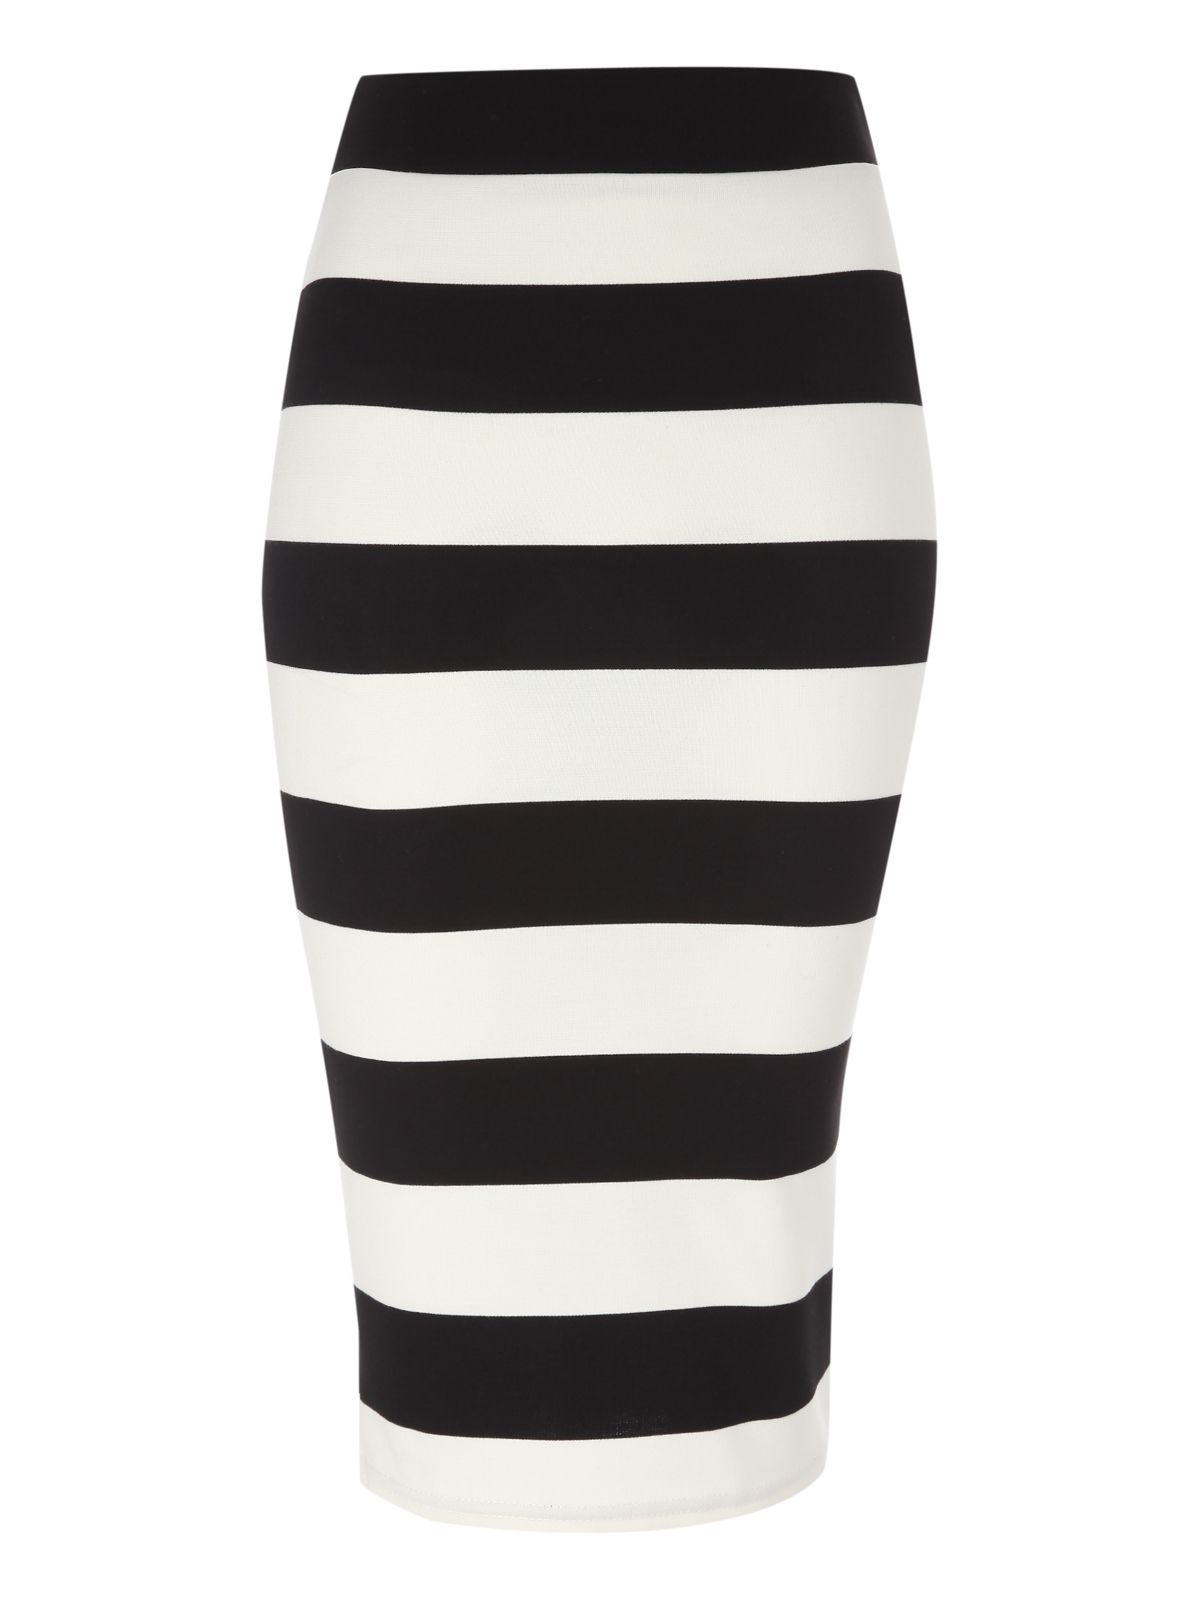 Monochrome stripe pencil skirt